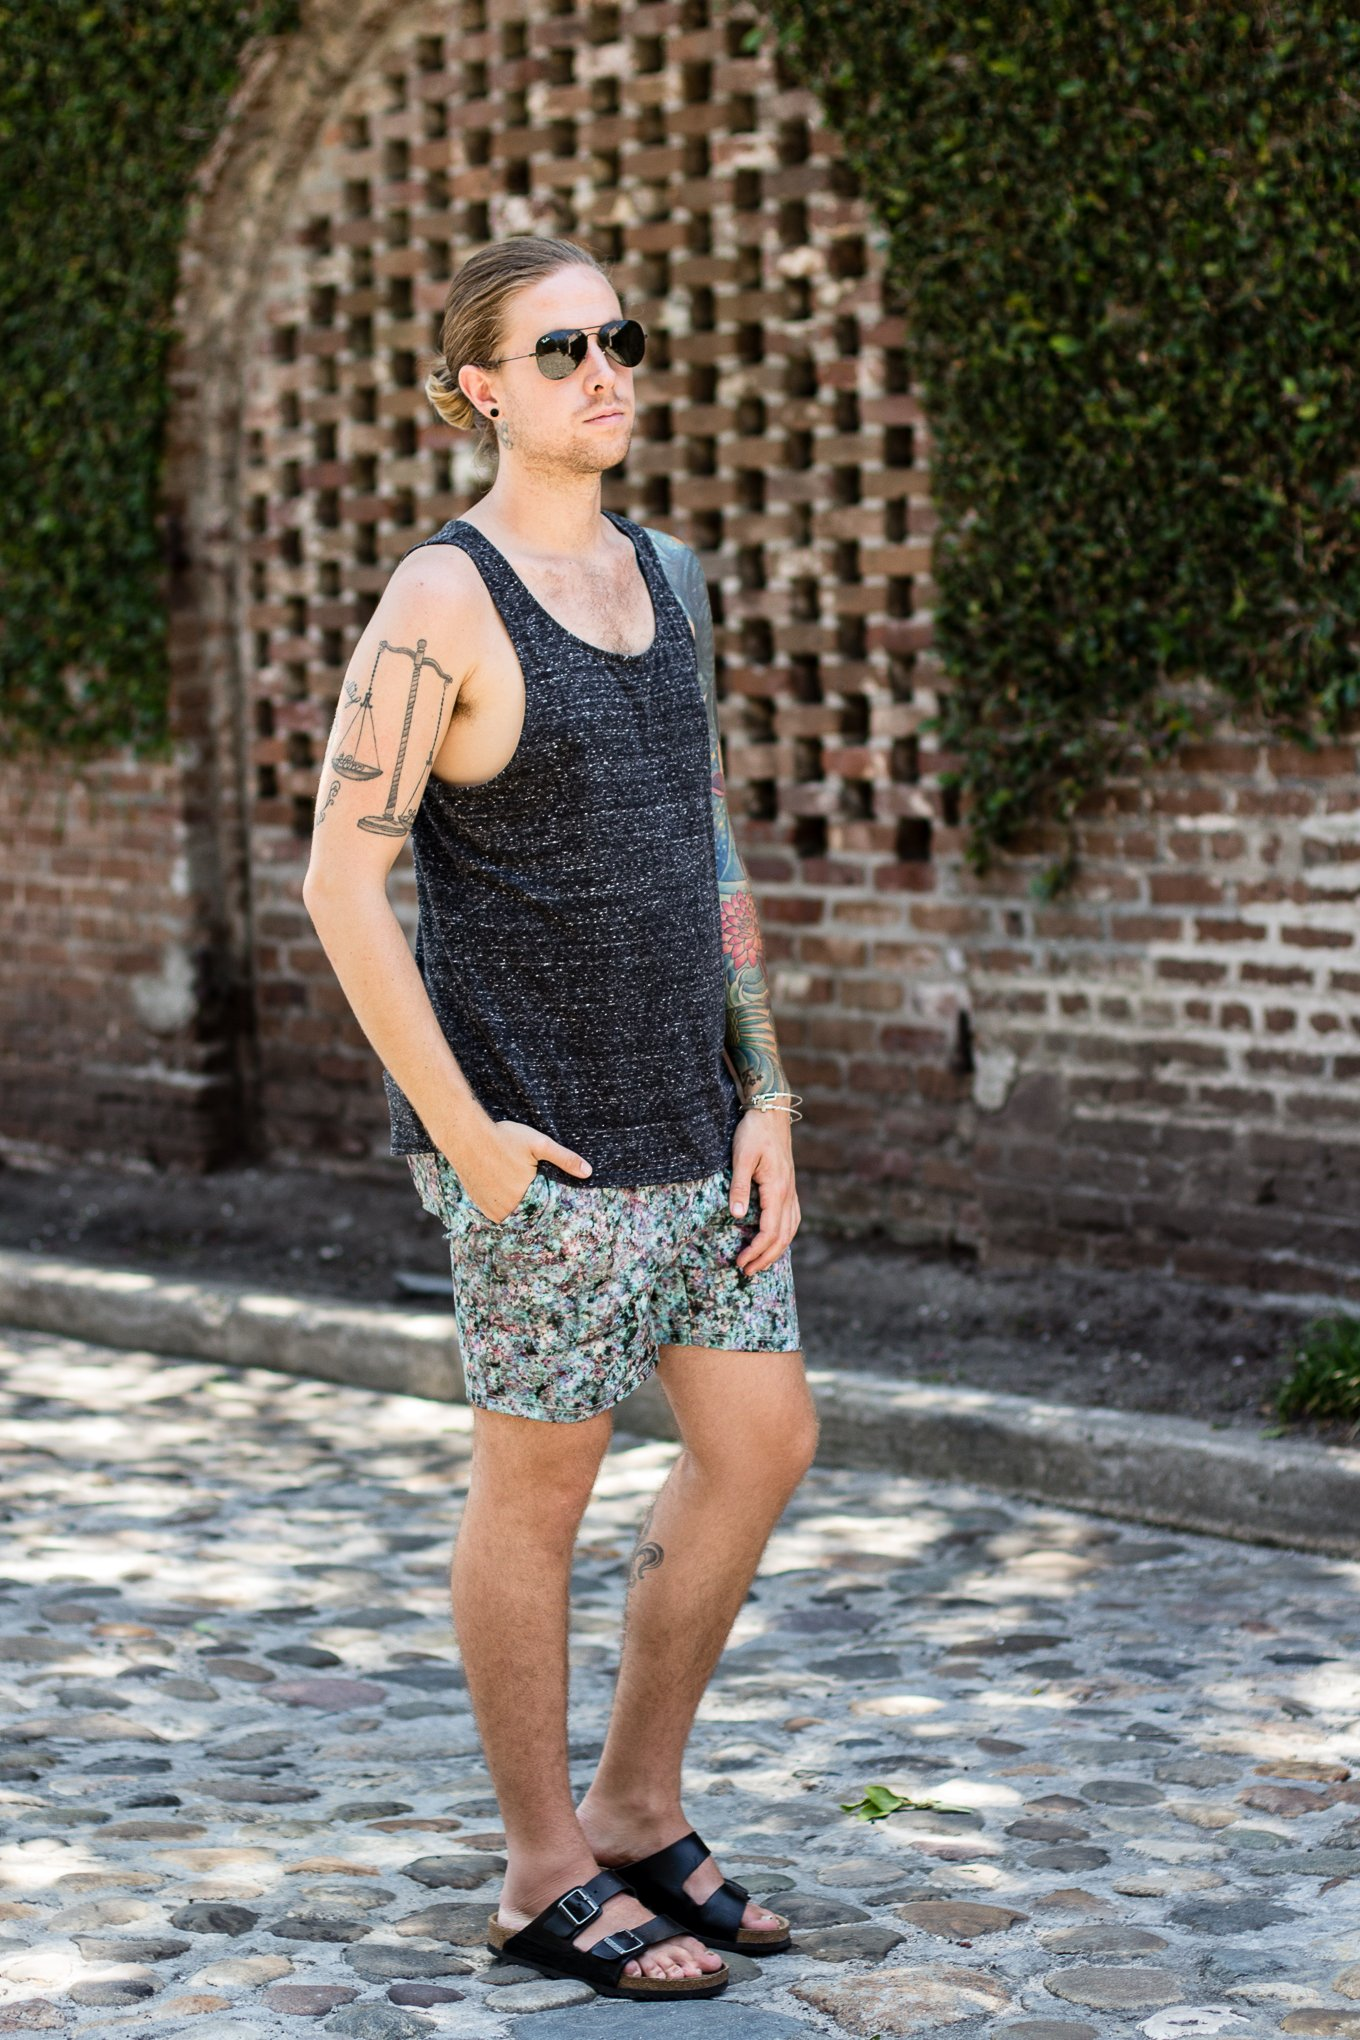 hm mens tank top, topman shorts, summer mens fashion, mens birkenstock sandals, rainbow row charleston